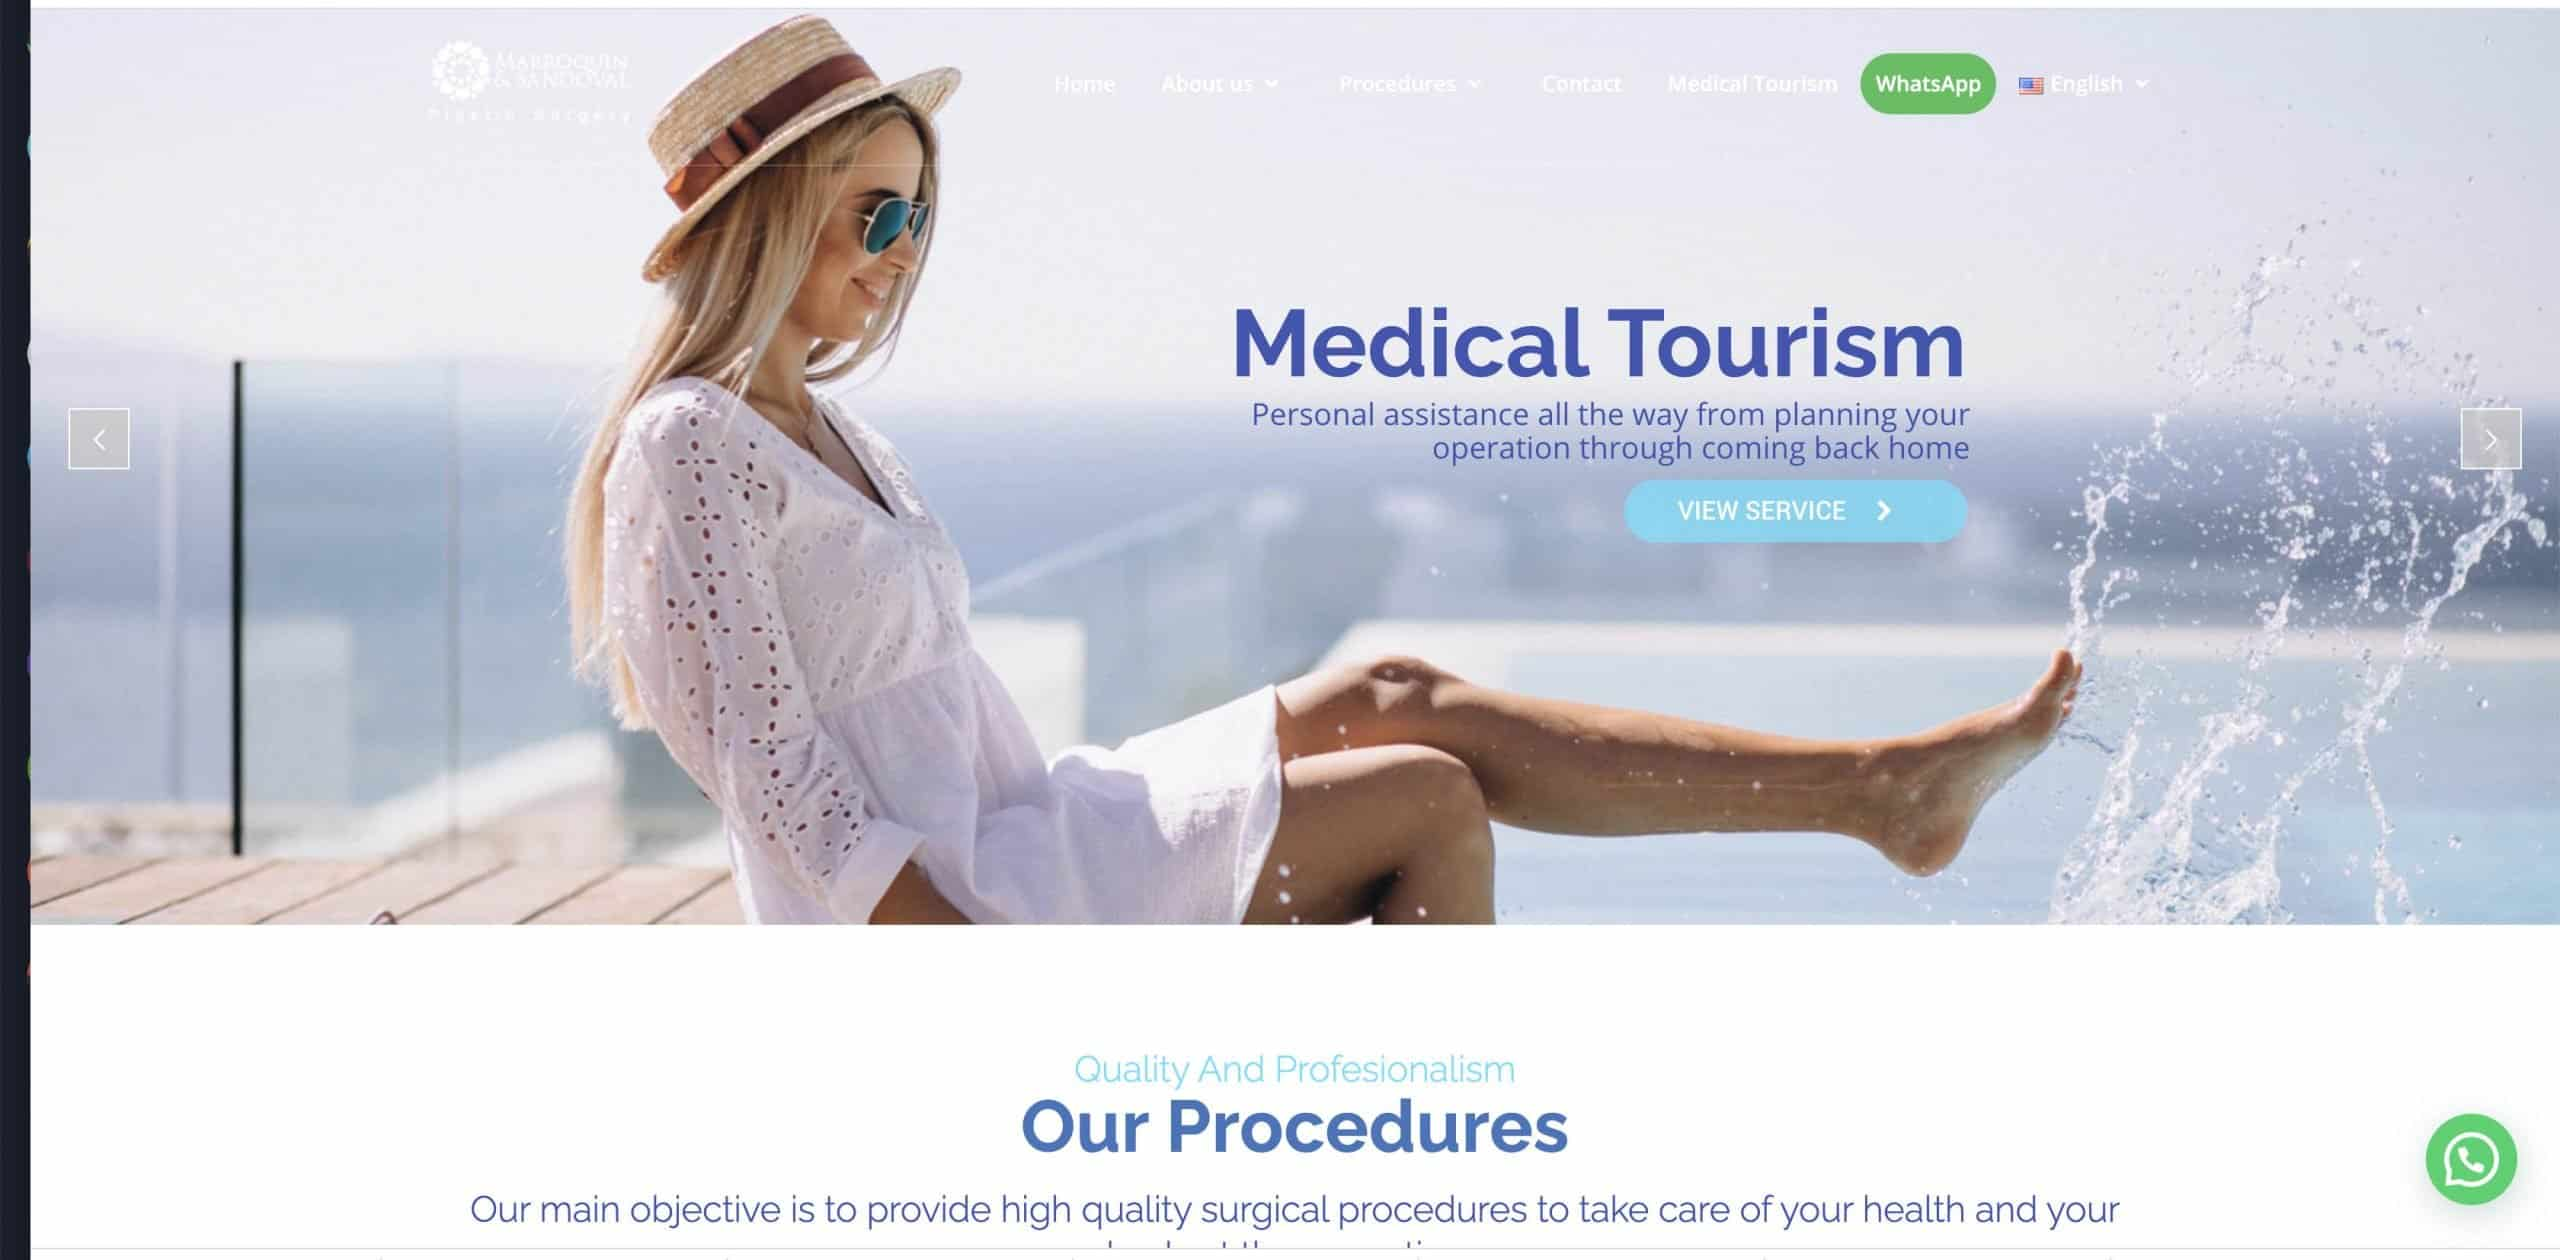 Marroquin and Sandoval – Los Cabos. Mexico - Best Cosmetic Surgery Clinics In Mexico